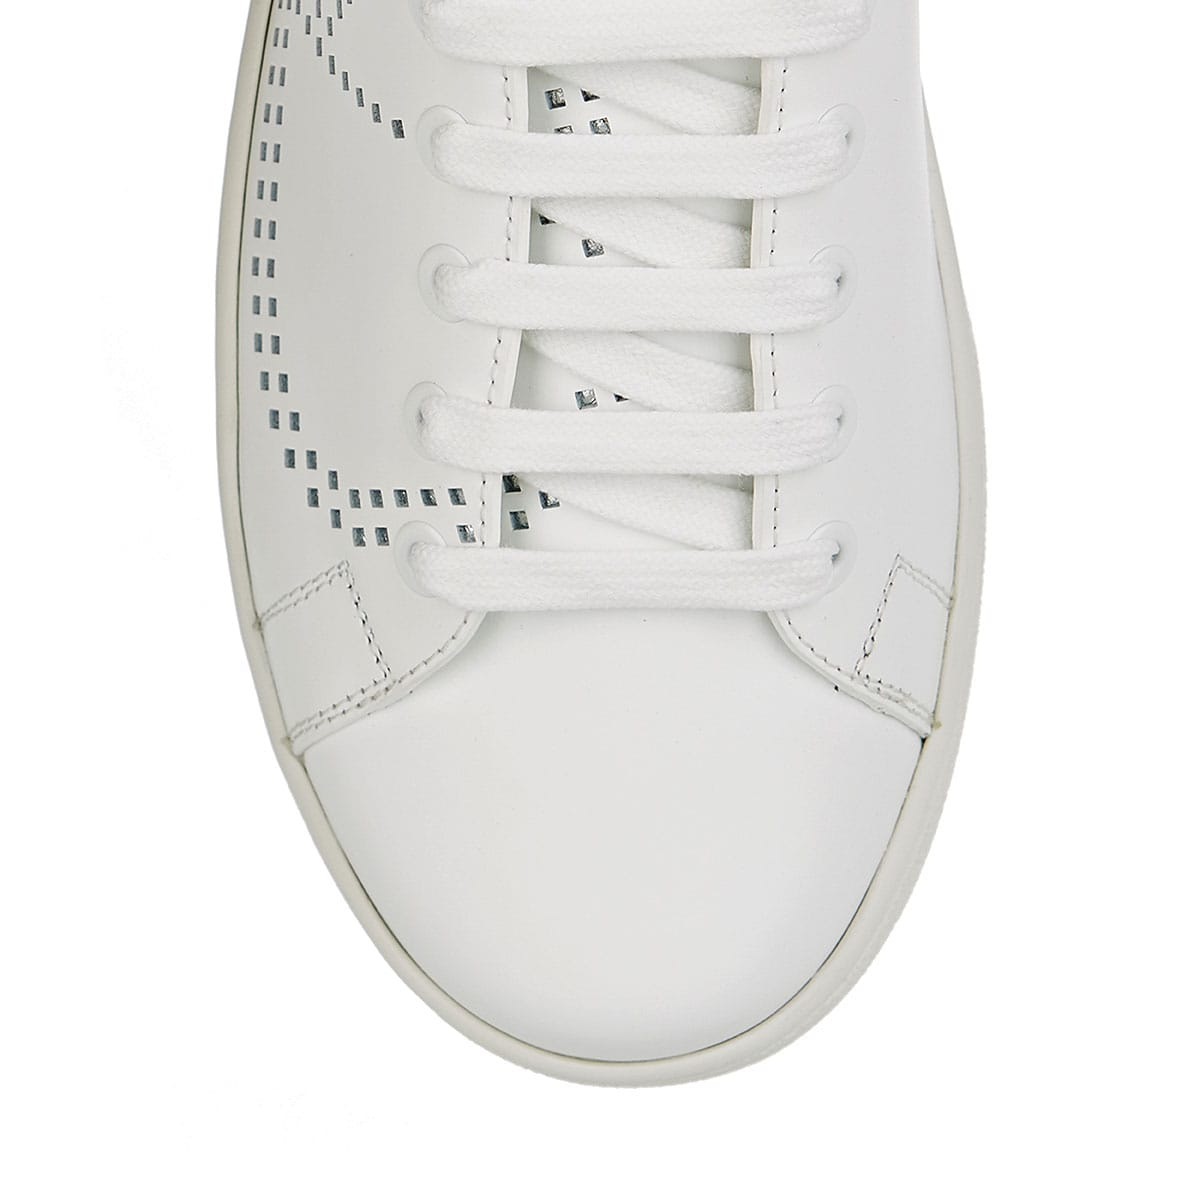 V-logo leather sneakers